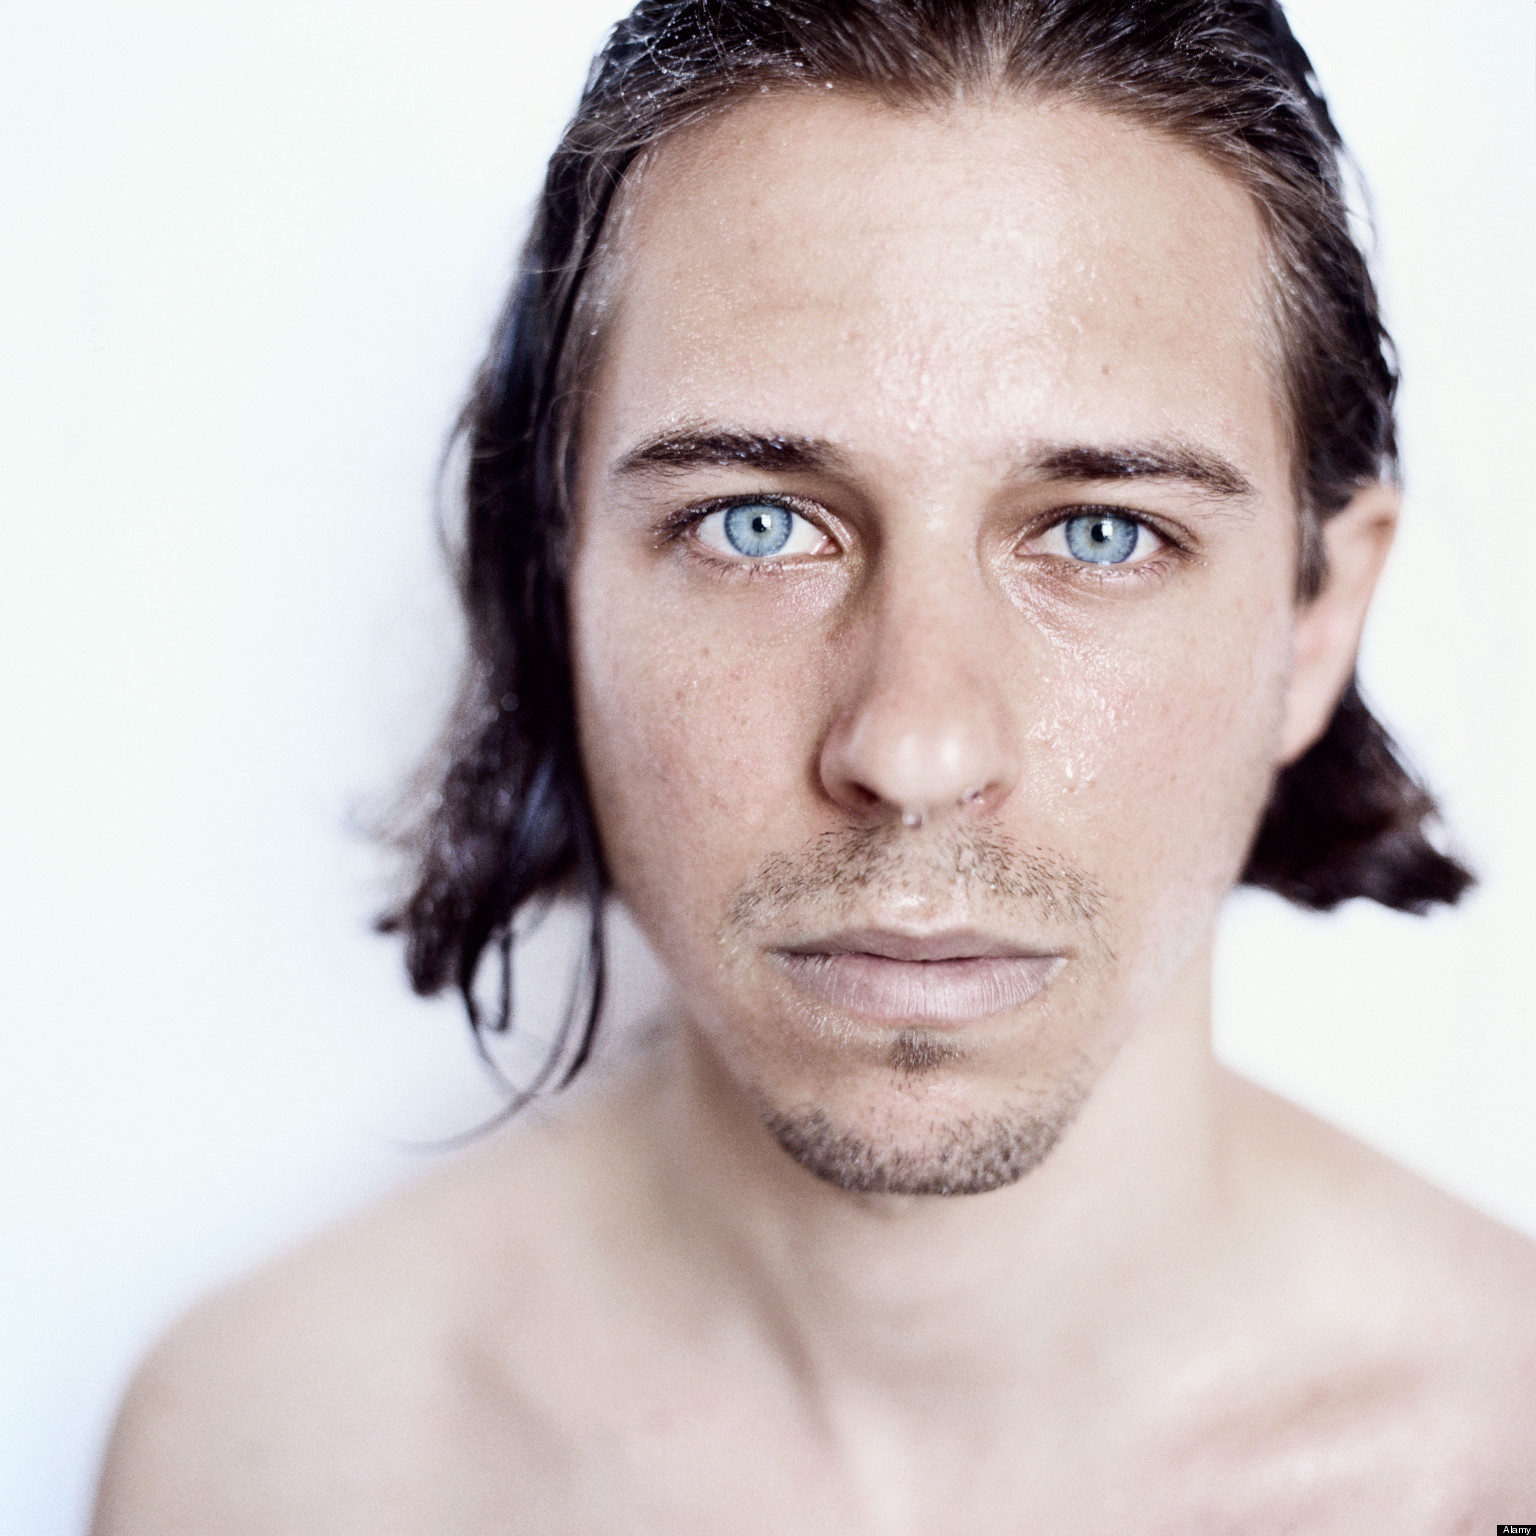 Men With Cold Blue Eyes And Thin Faces Seen As Less